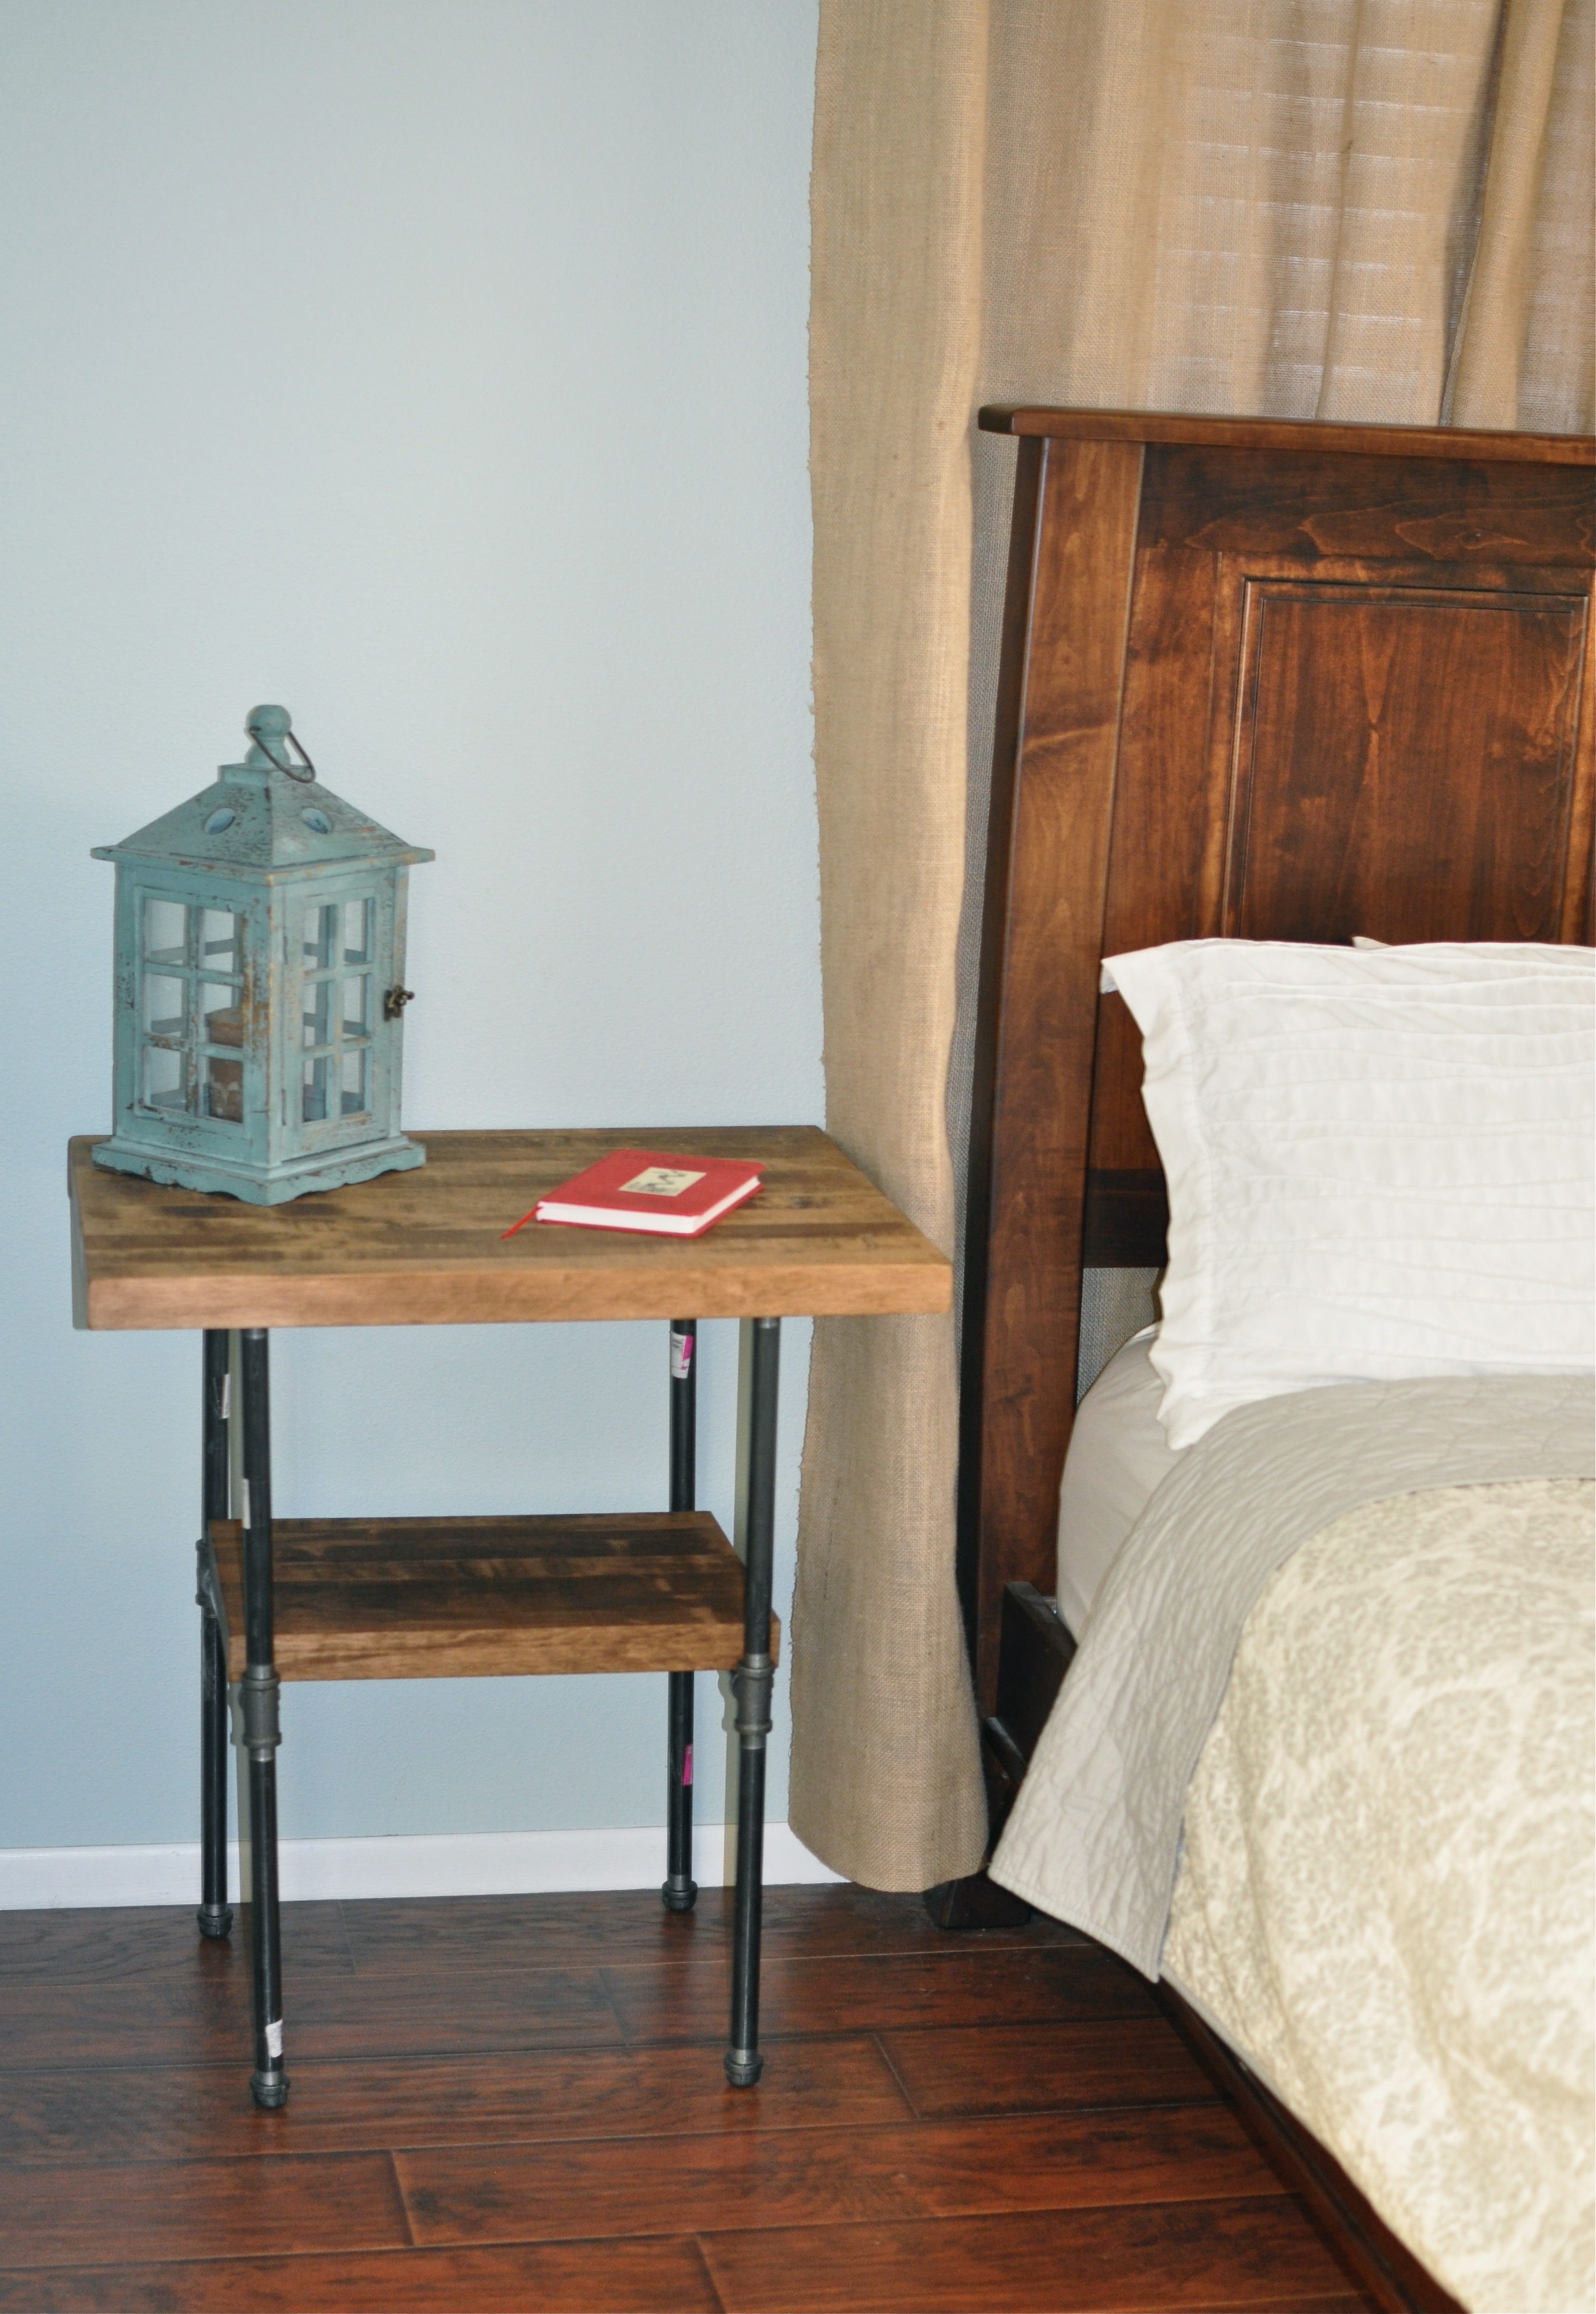 Diy Small Bedside Tables: Butcher Block And Iron Pipe Bedside Table